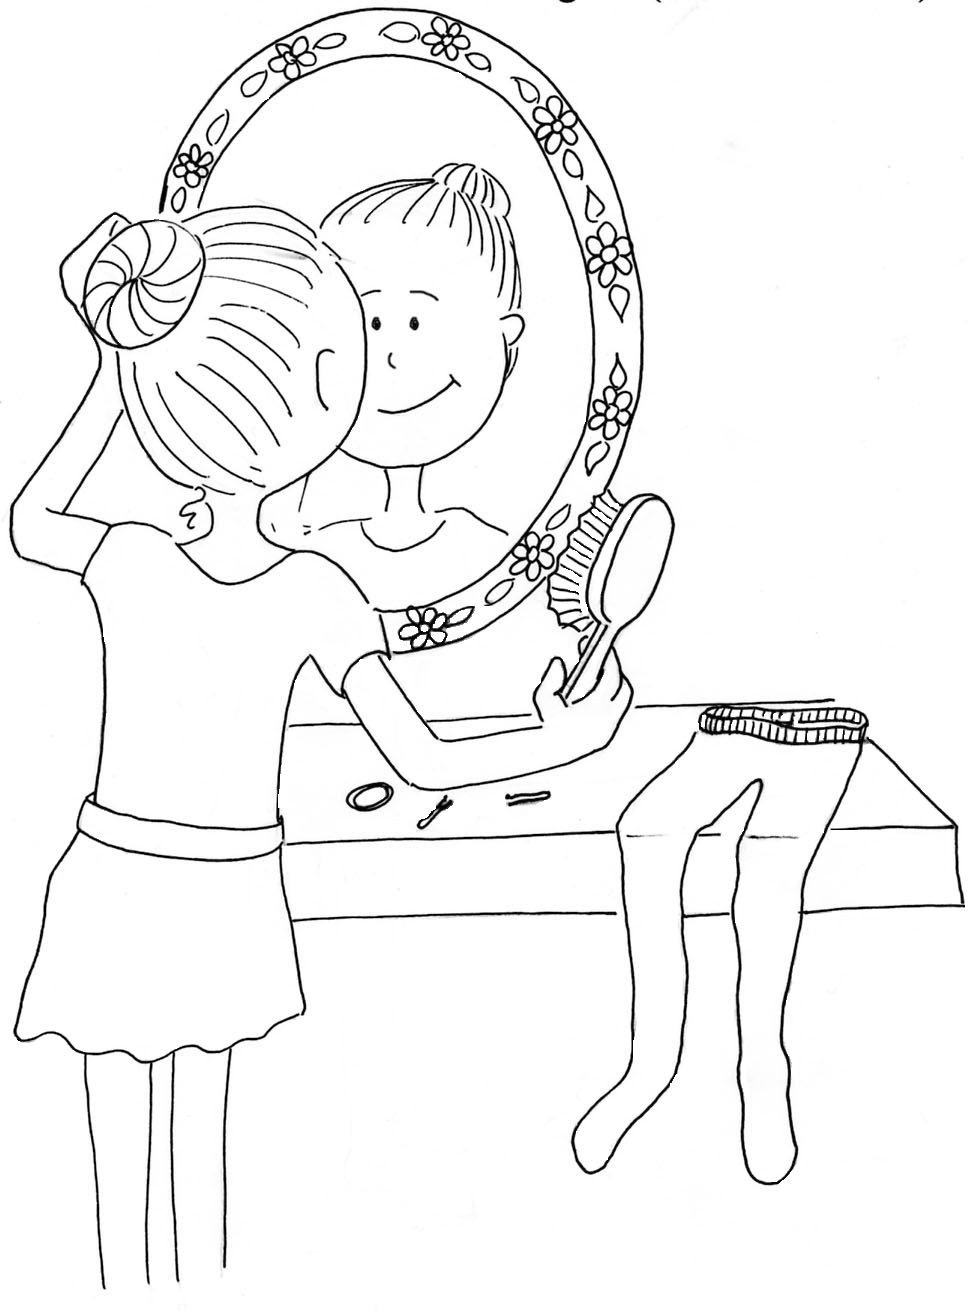 975x1311 Marvelous Bing Coloring Pages Coloring In Funny Girl Hair Coloring